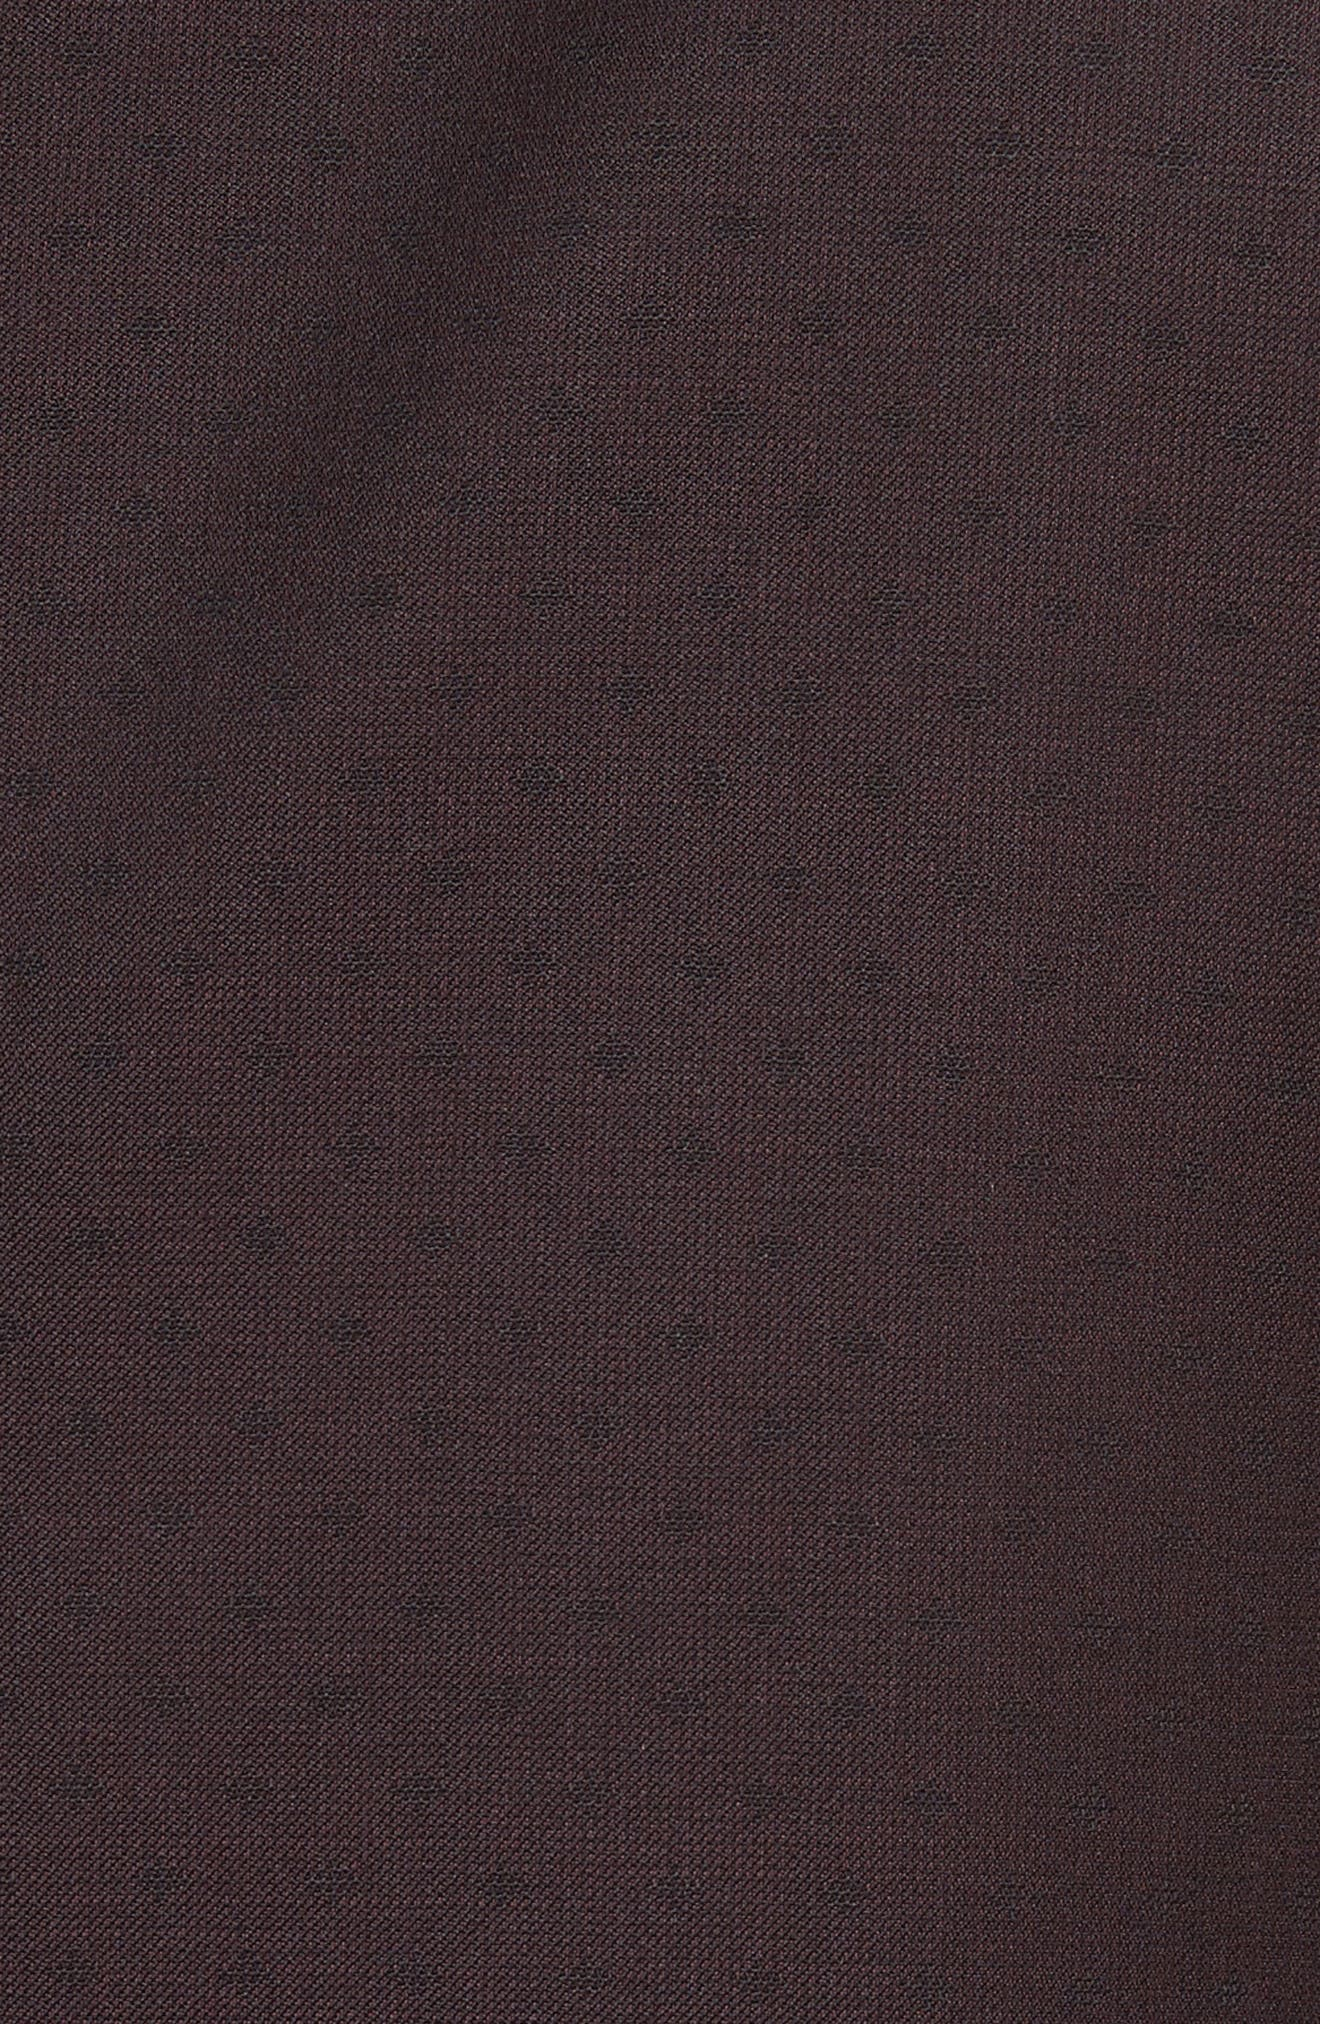 Trim Fit Wool Dinner Jacket,                             Alternate thumbnail 5, color,                             Merlot